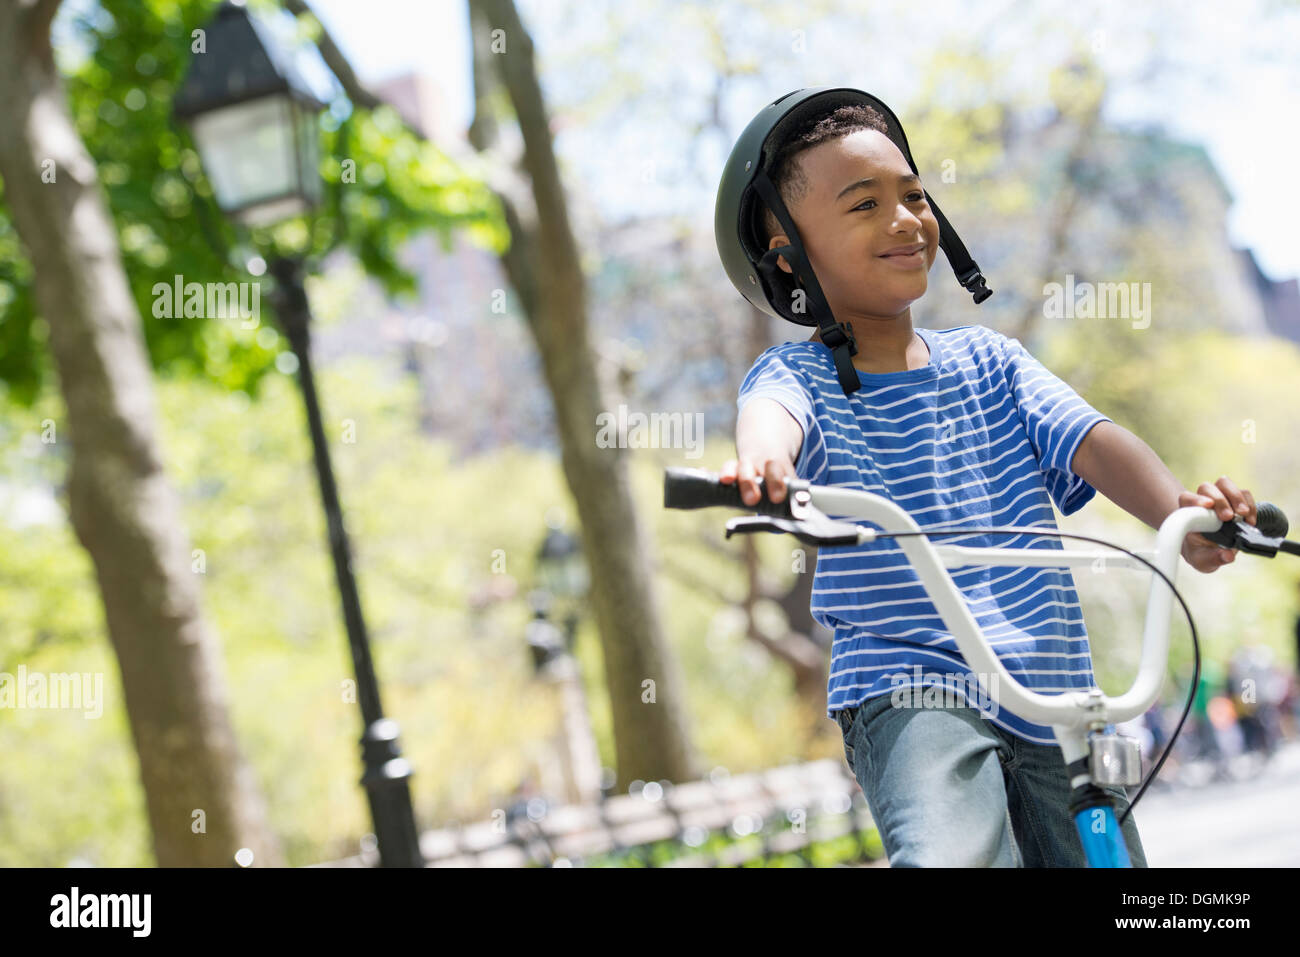 A family in the park on a sunny day. Bicycling and having fun. Stock Photo